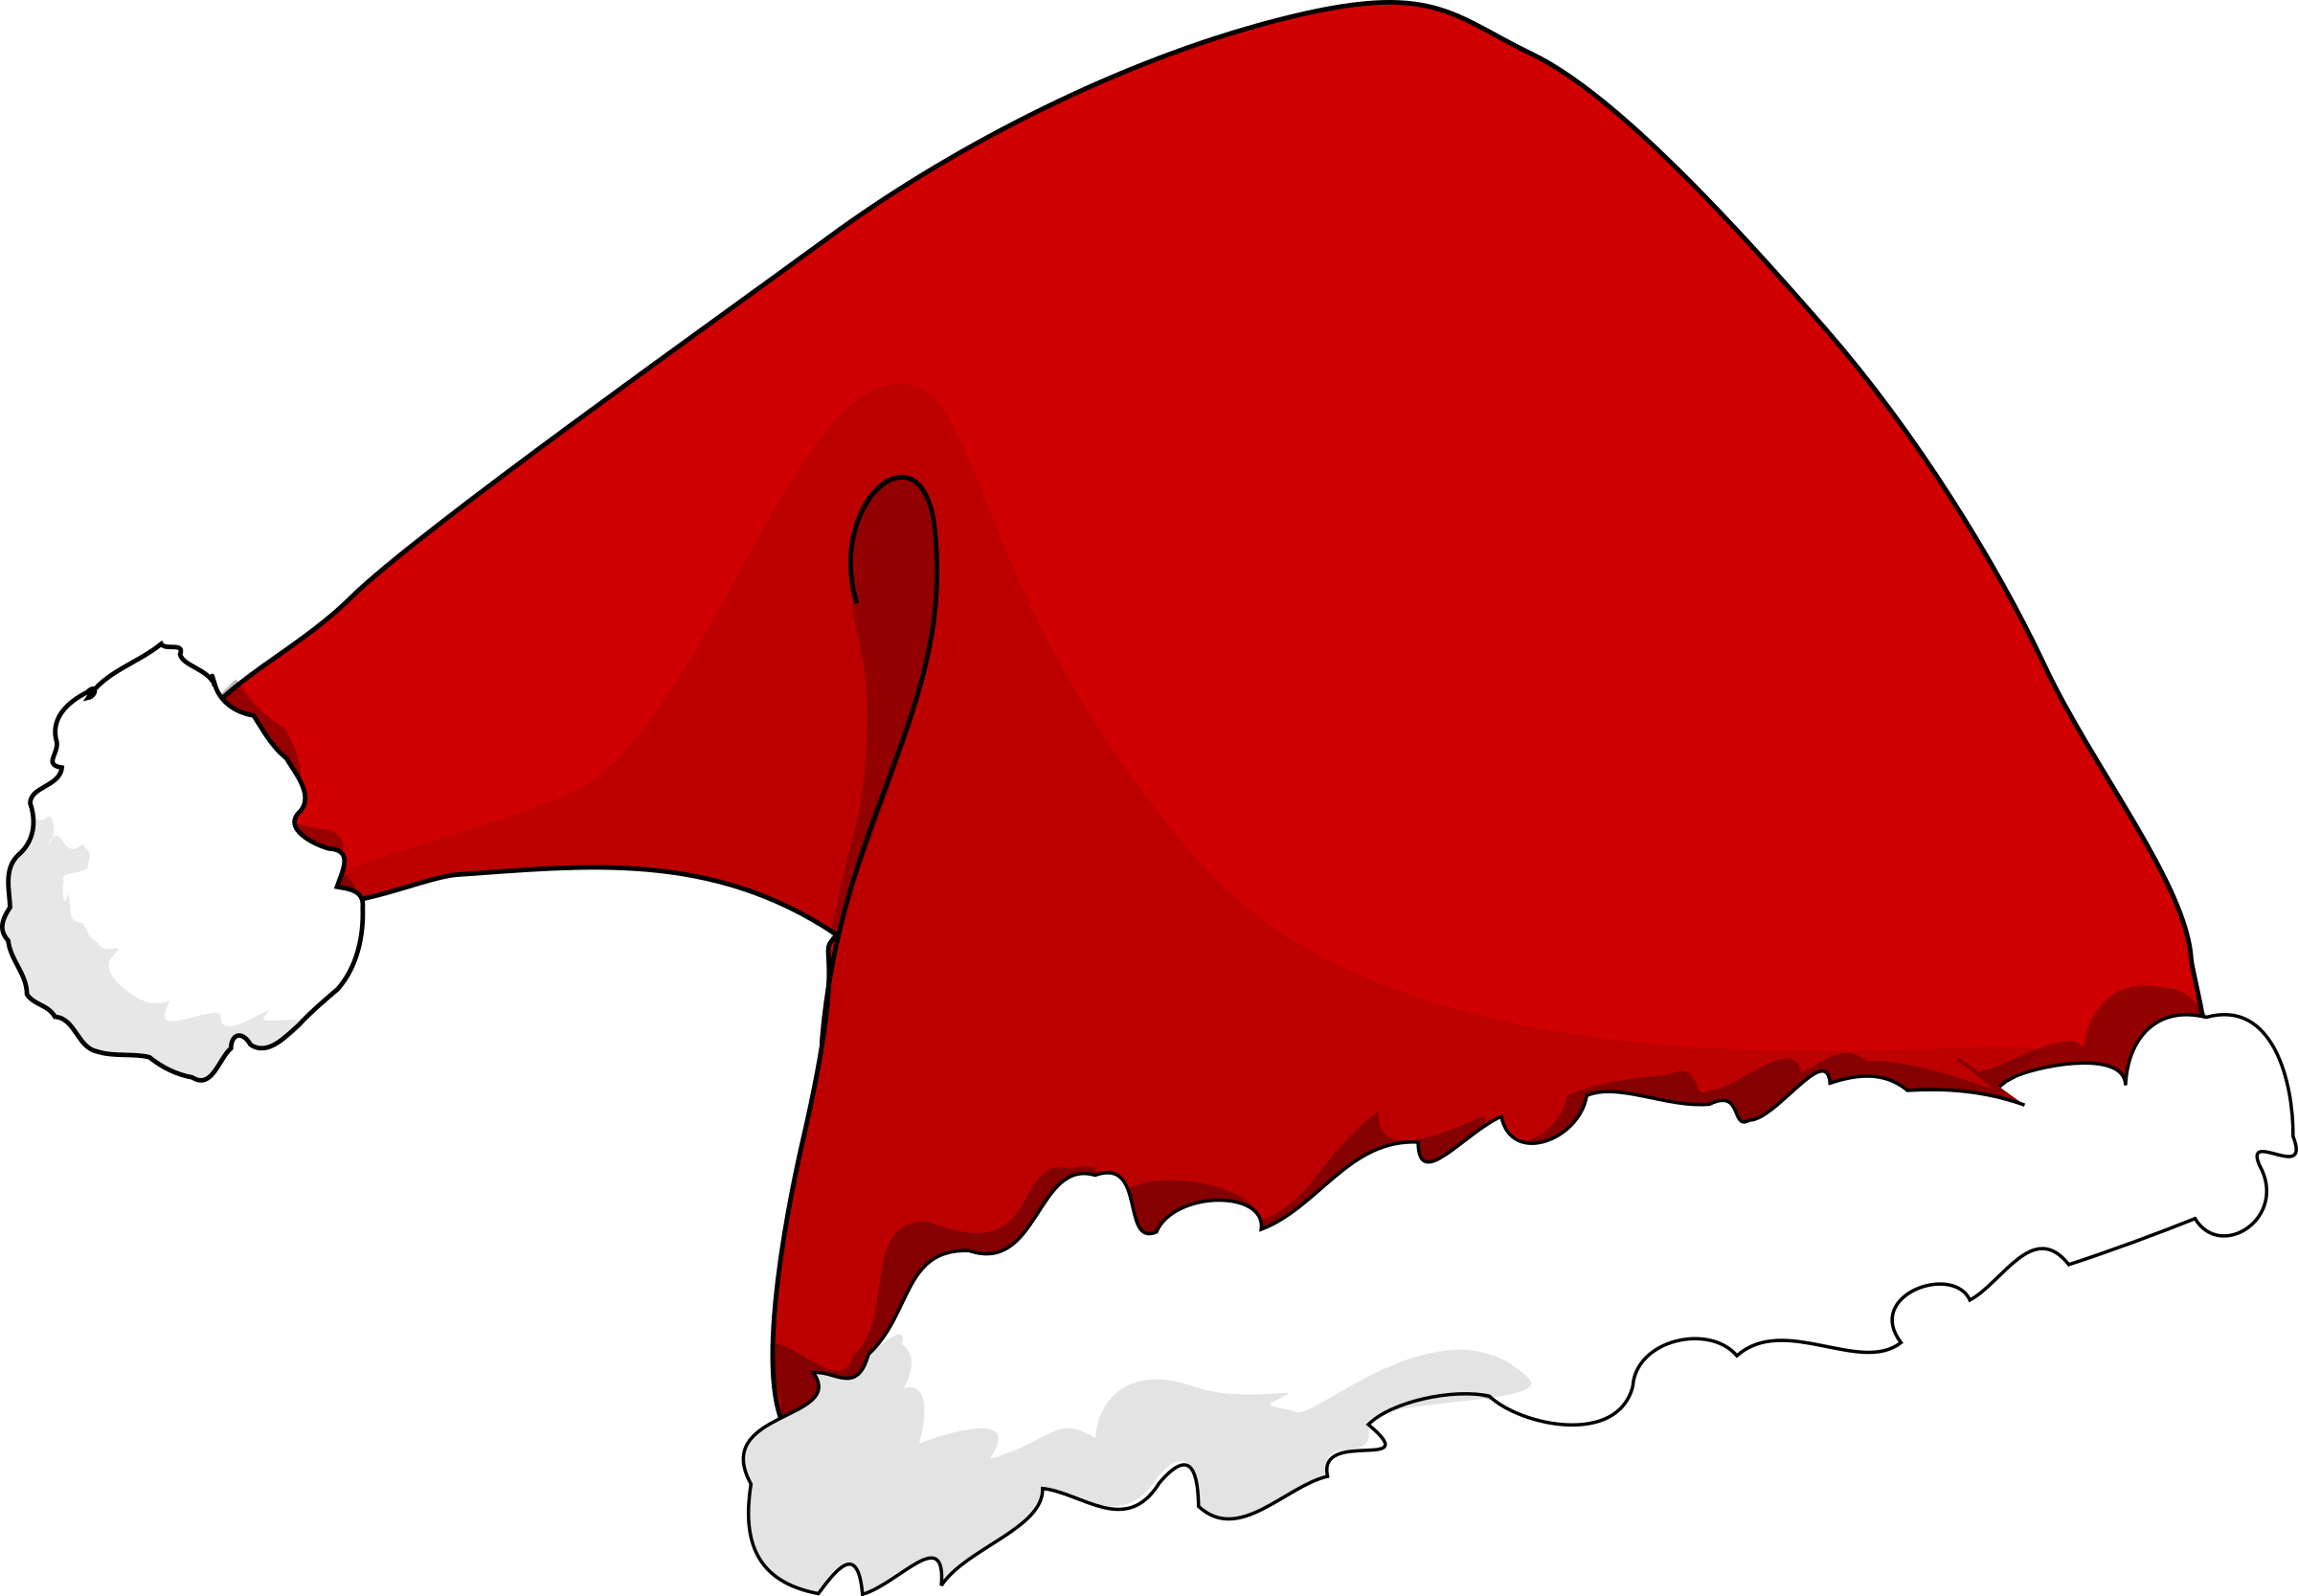 Microsoft santa with bag clipart.